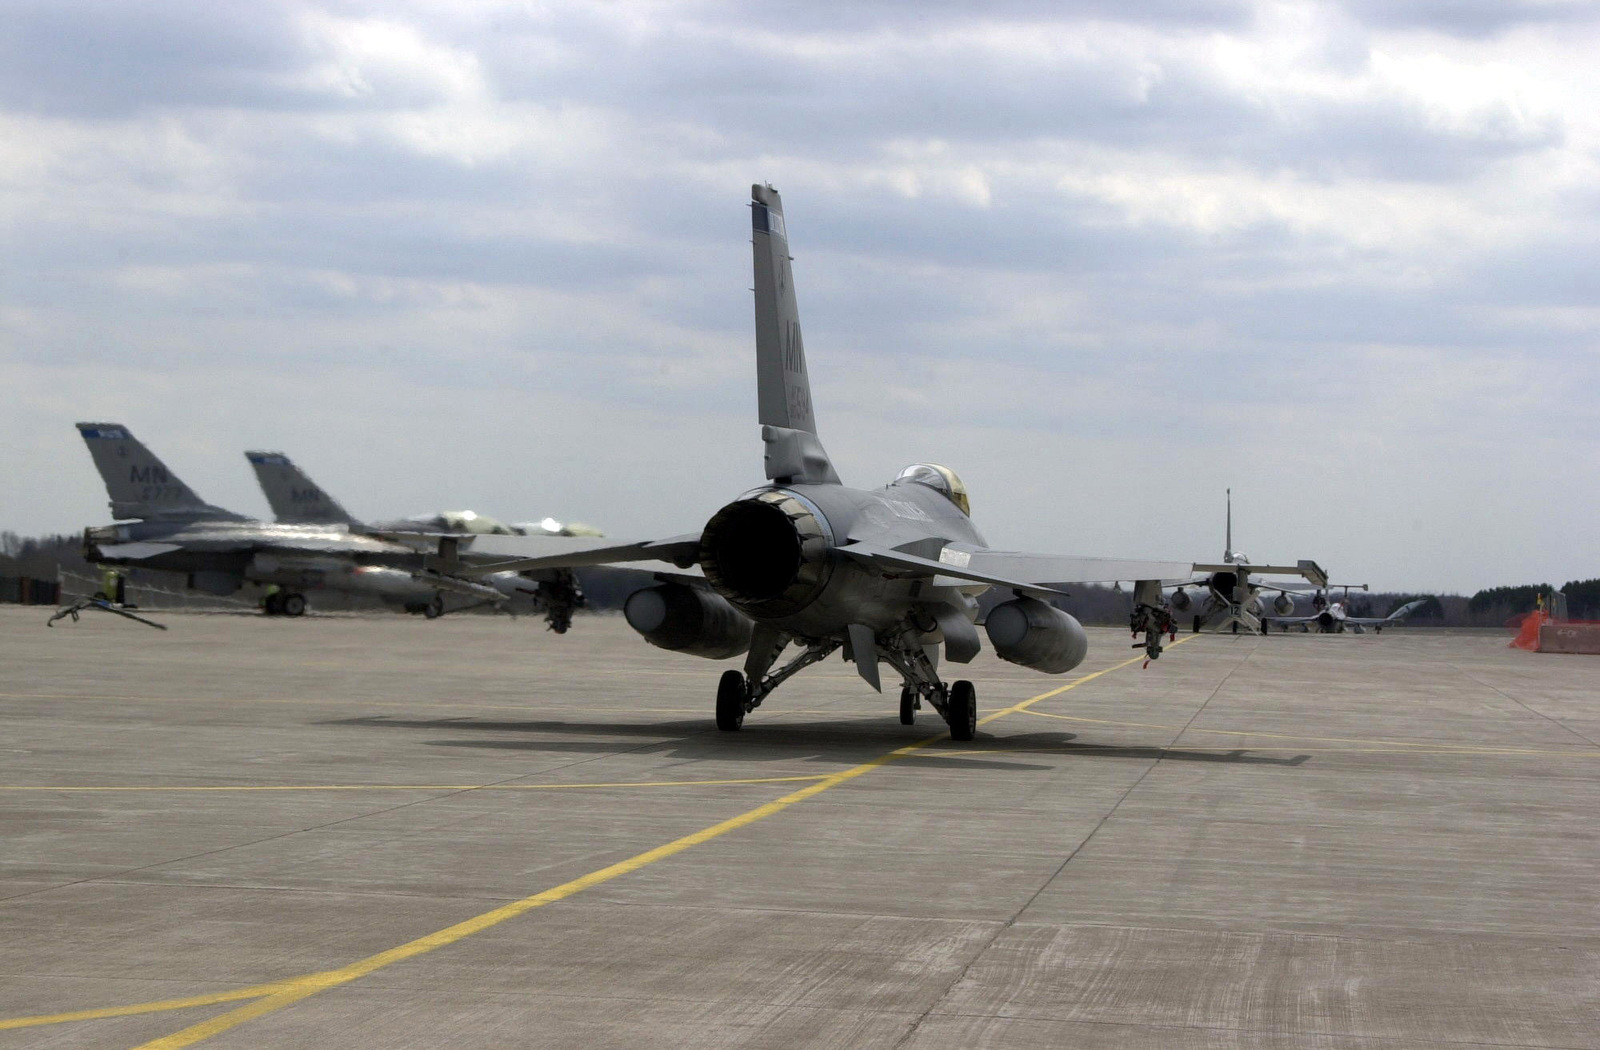 US Air Force (USAF) F-16C Fighting Falcons aircraft assigned to the 148th Fighter Wing (FW), Minnesota (MN), Air National Guard (ANG) taxi their way onto the runway at Duluth International Airport, MN, for a mission in support of Operation NOBLE EAGLE